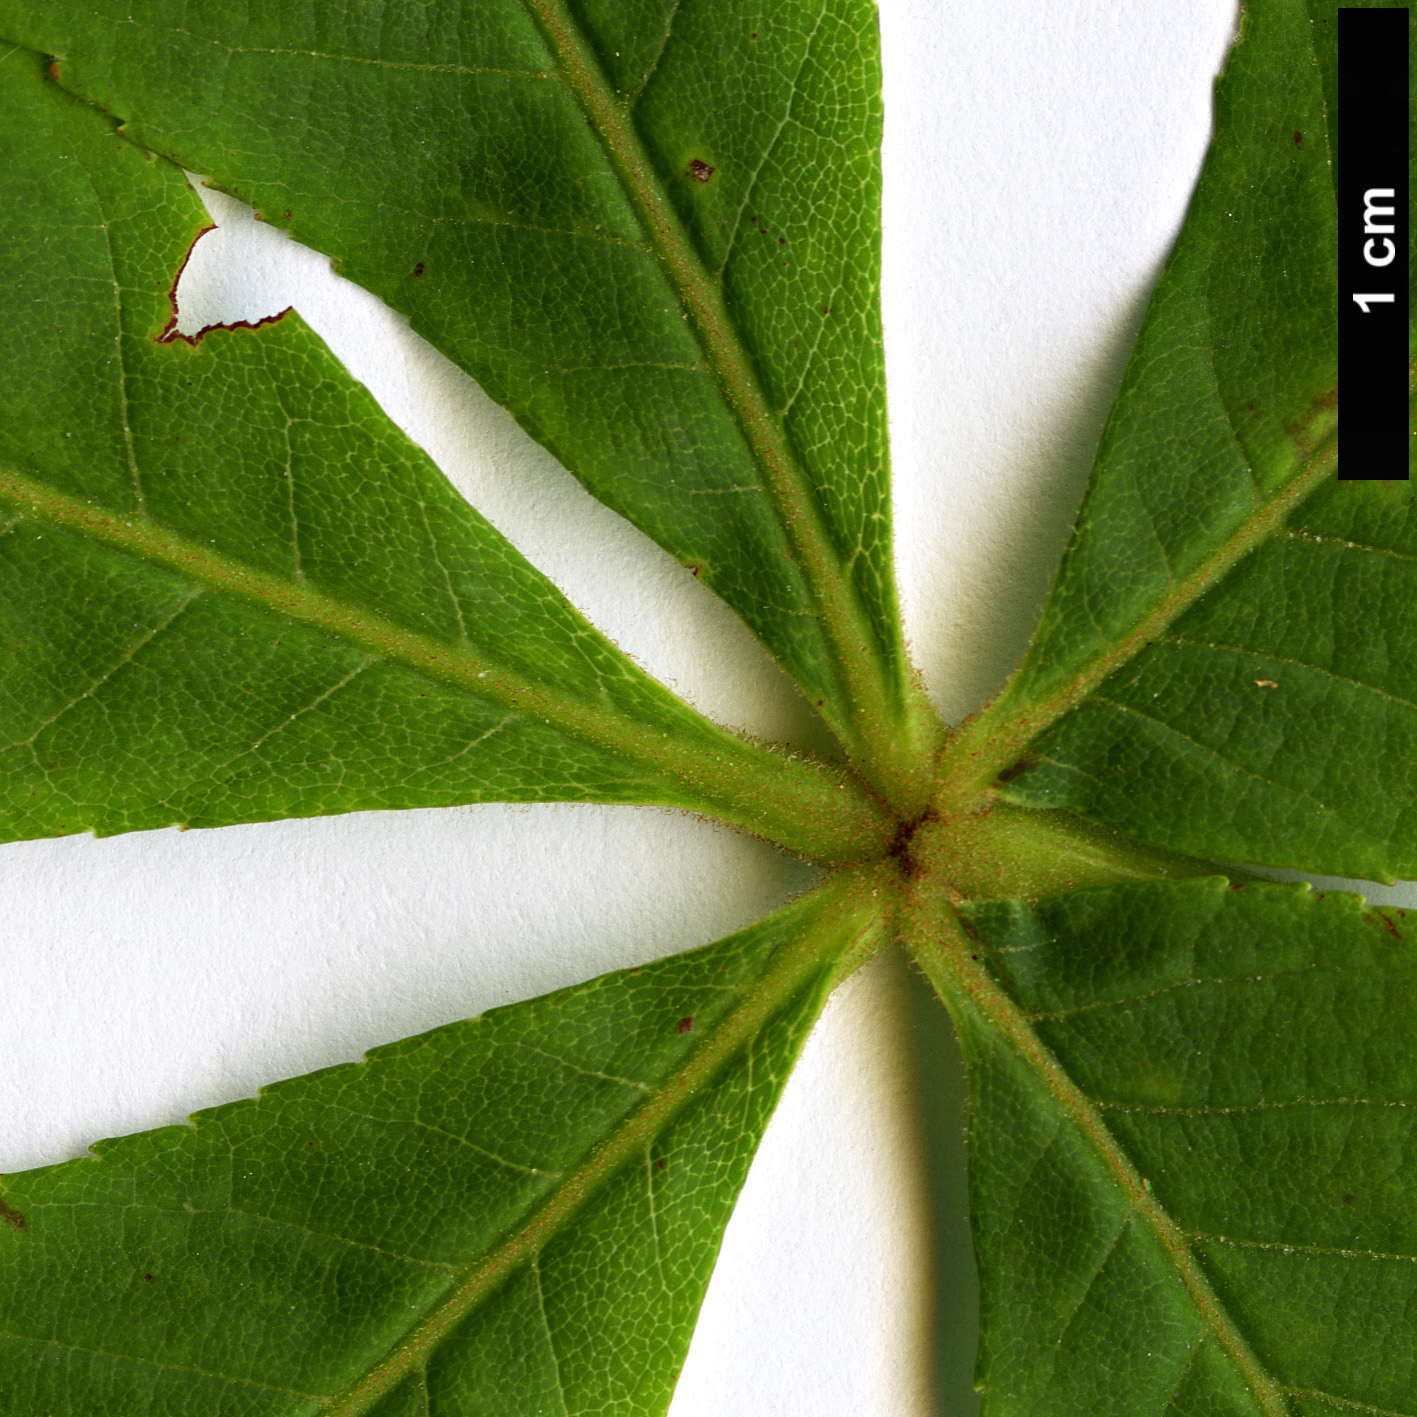 High resolution image: Family: Sapindaceae - Genus: Aesculus - Taxon: flava